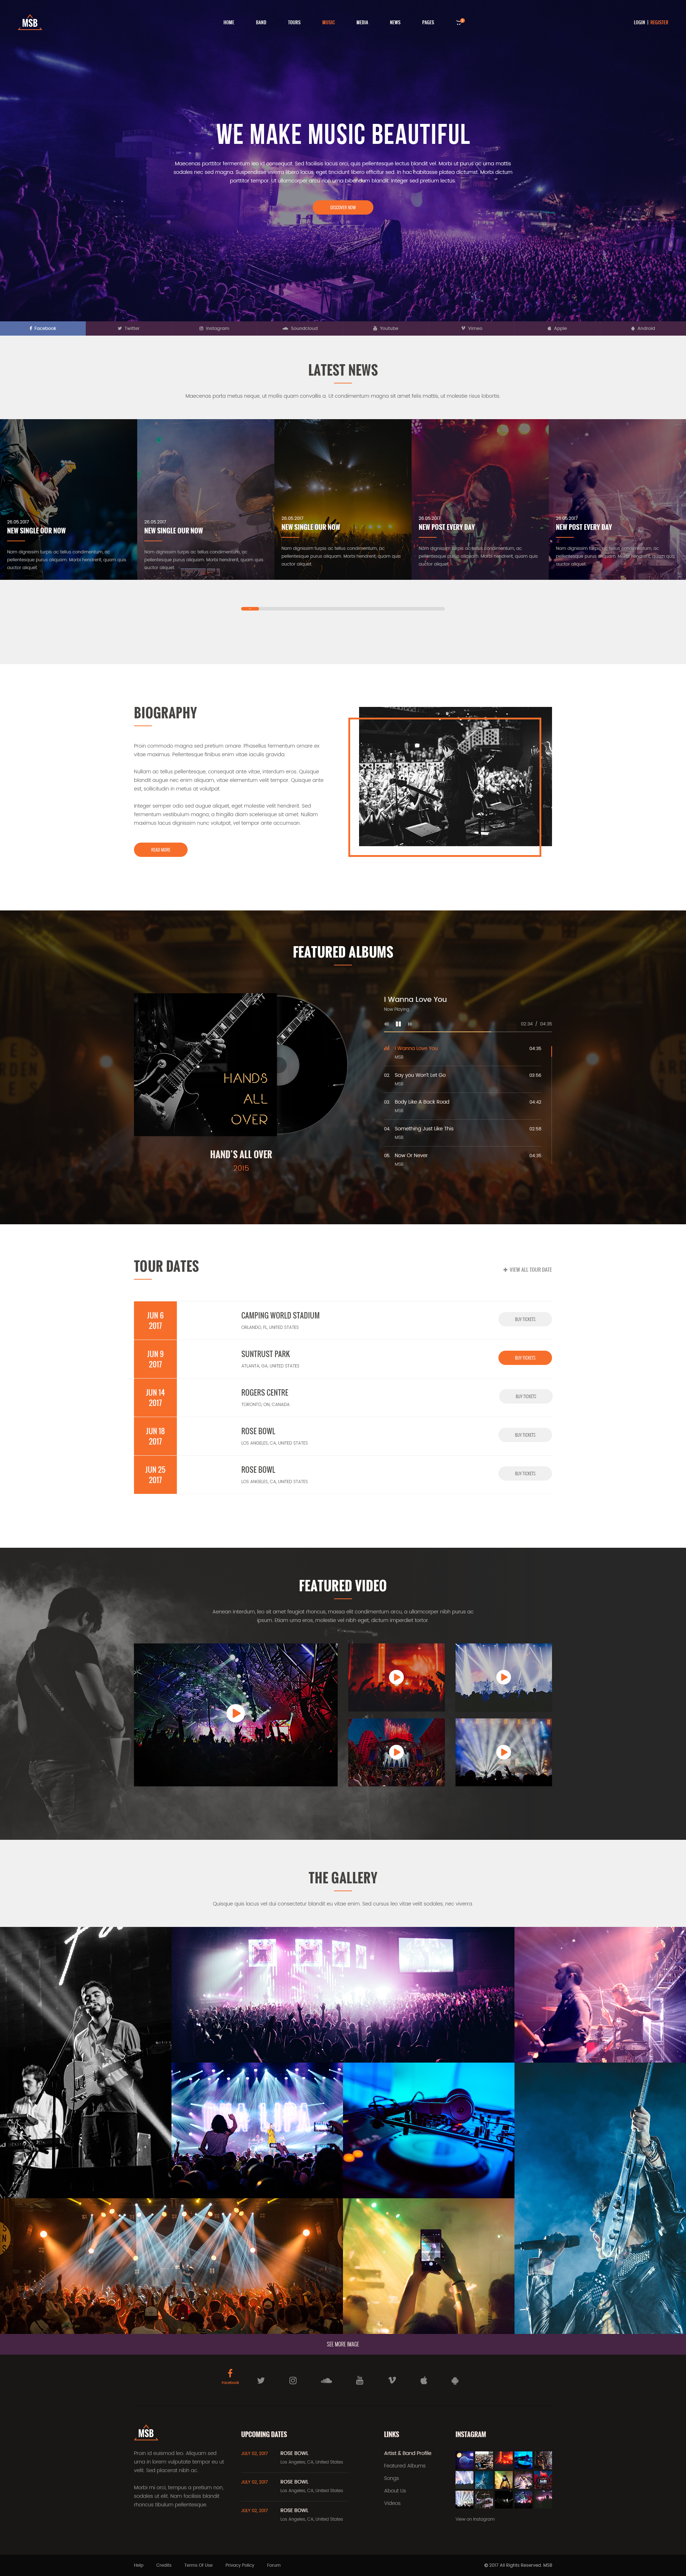 Msb music band psd template by plazart themeforest homepageg screenshots100 pages forum lg screenshots100 pages forumg screenshots21 band about us lg screenshots21 band about reheart Image collections